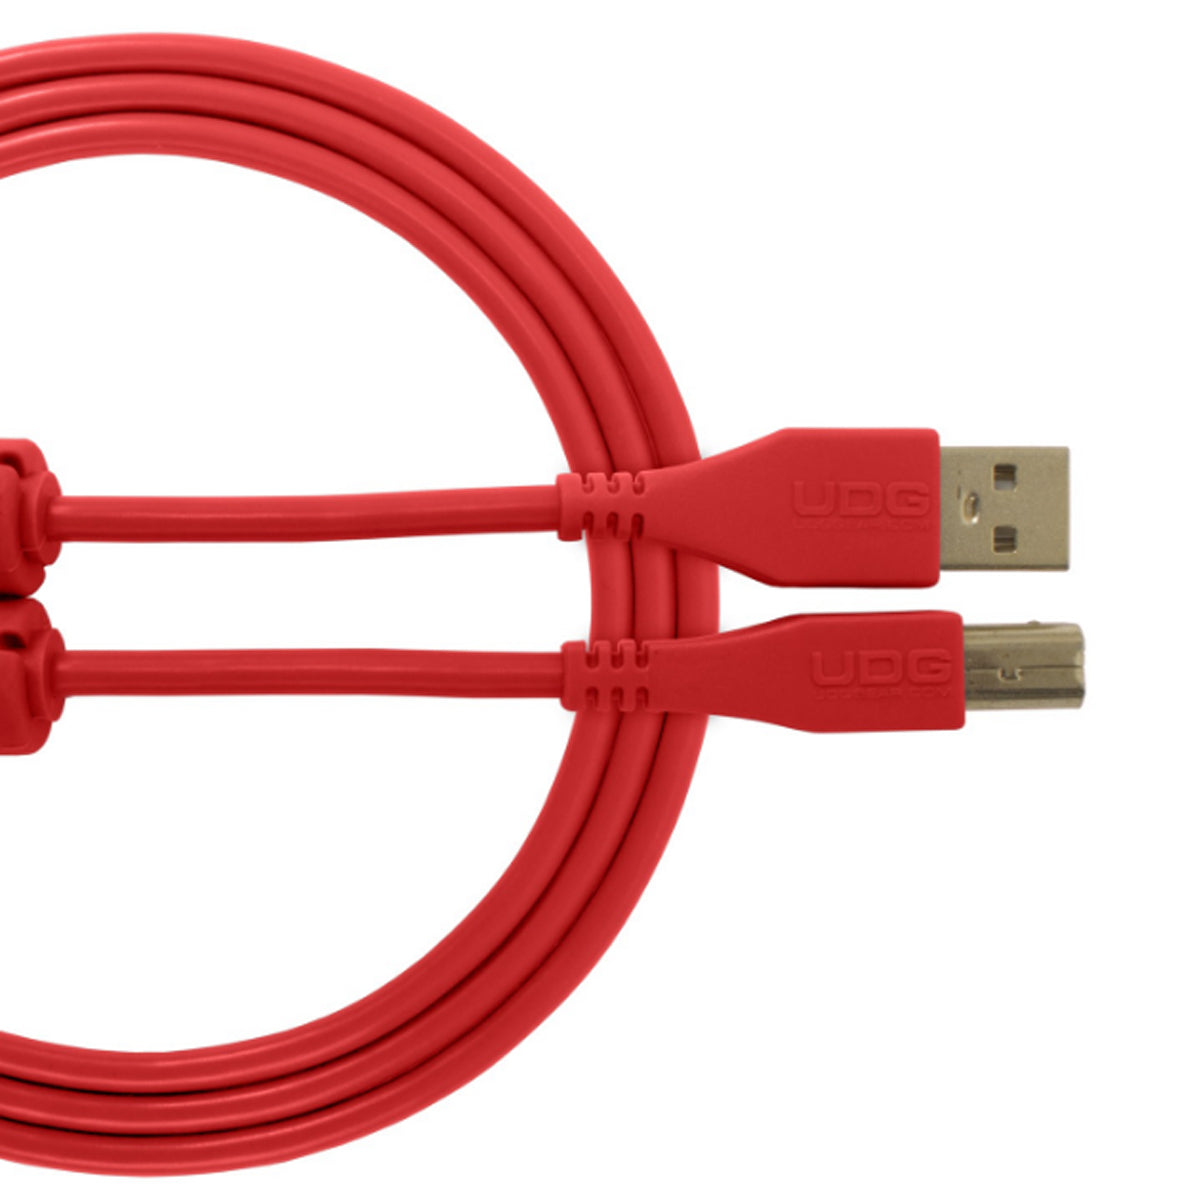 UDG Ultimate U95001 USB2 Cable A-B Red Straight 1m